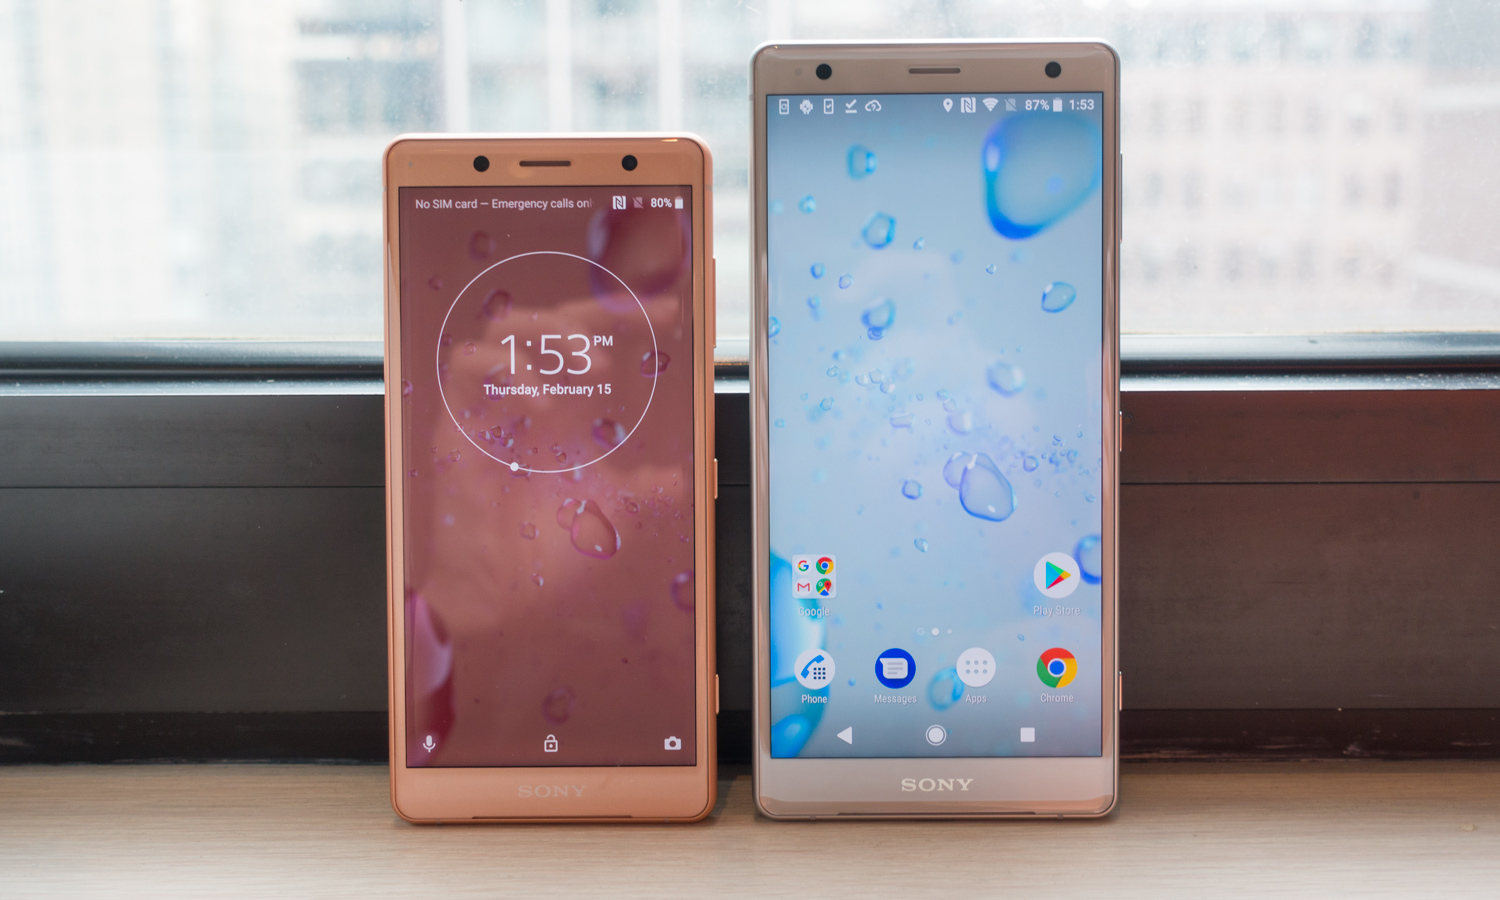 Sony Xperia XZ2 Hands-On: The Compact Steals the Show